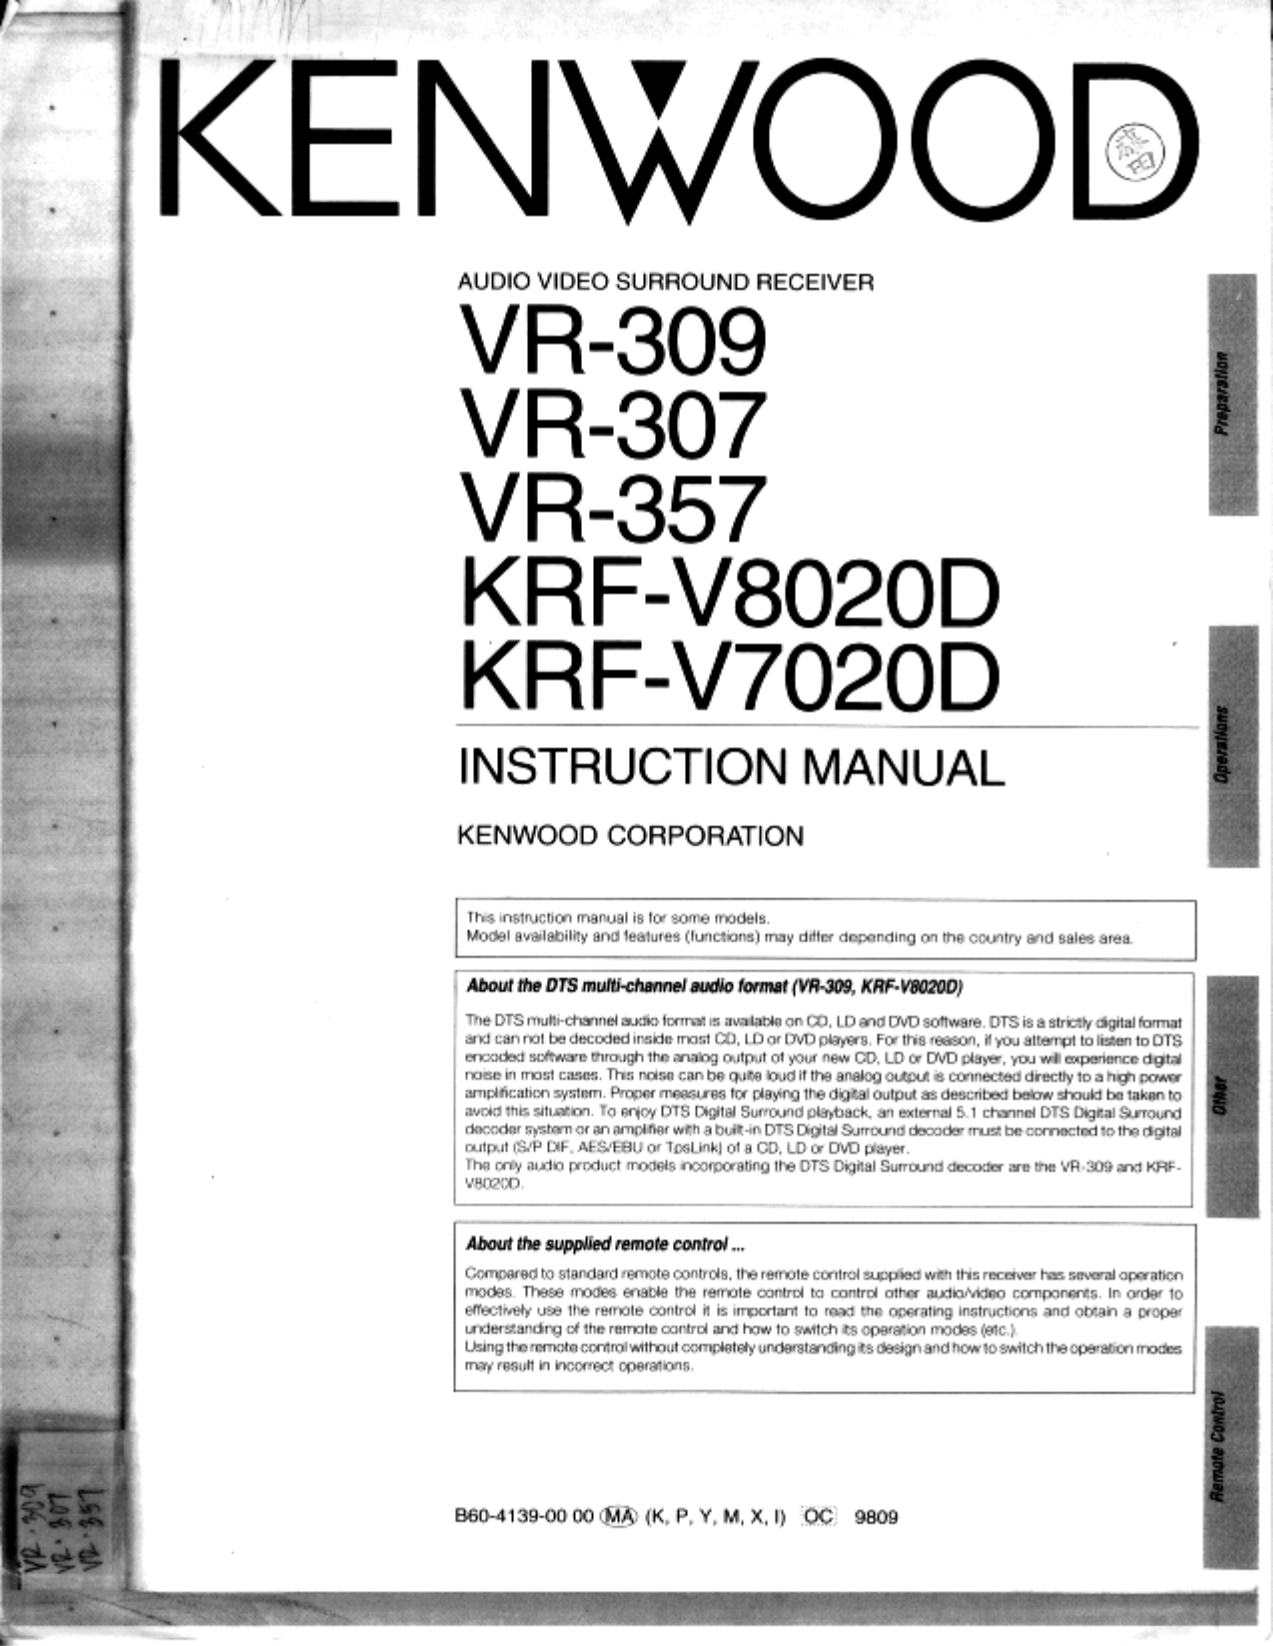 Wiring Diagram For Kenwood Vr 405 : Kenwood vr wiring diagram nissan maxima audio